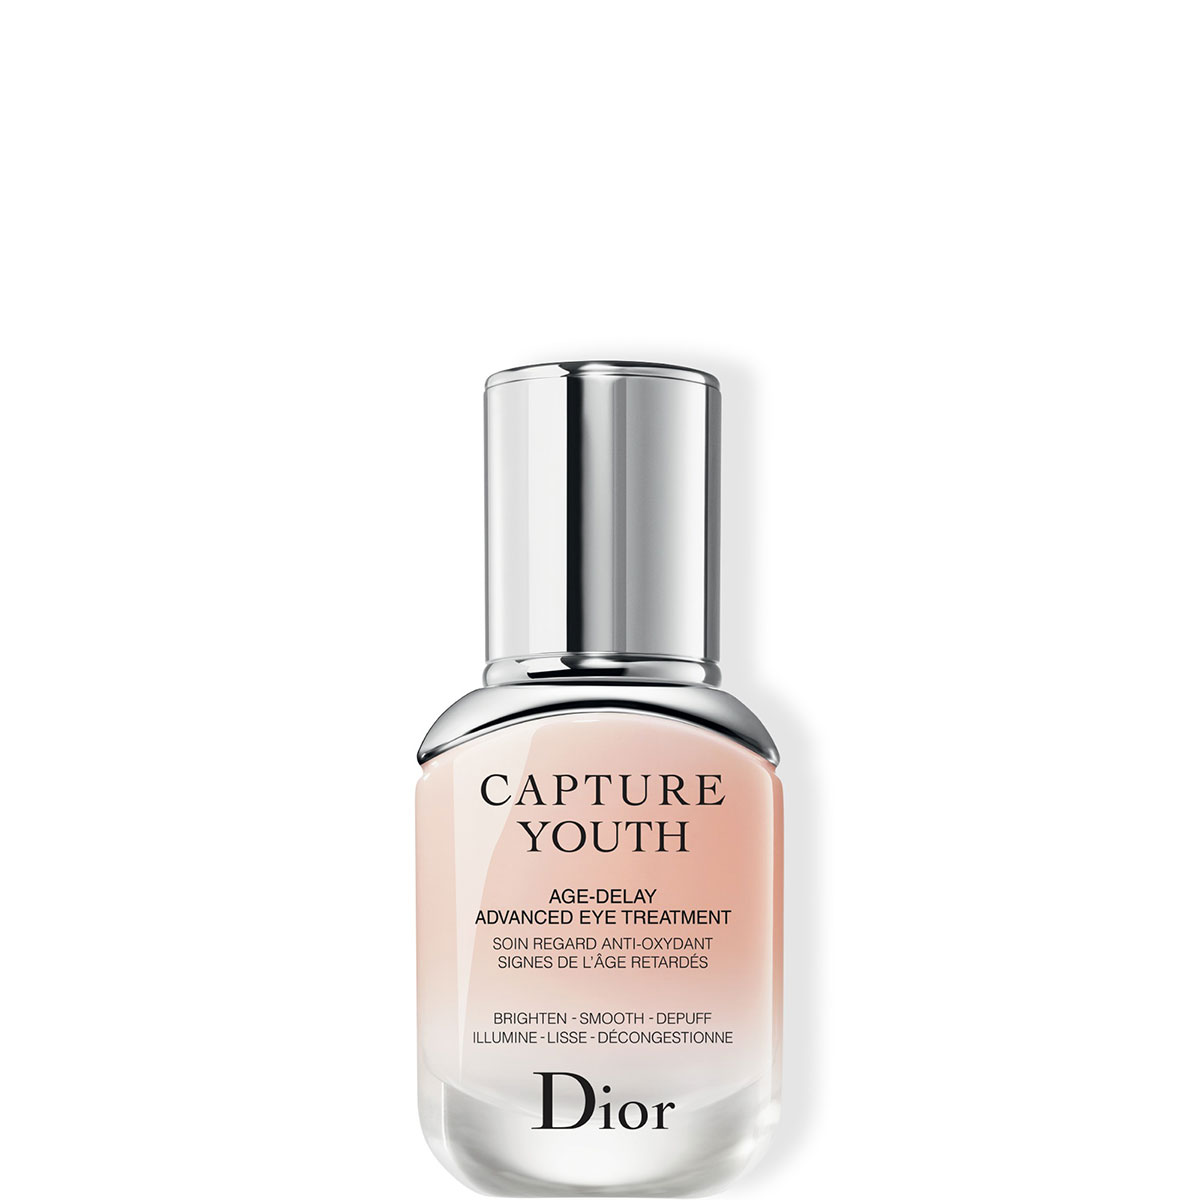 Dior - Capture Youth - Soin regard antioxydant